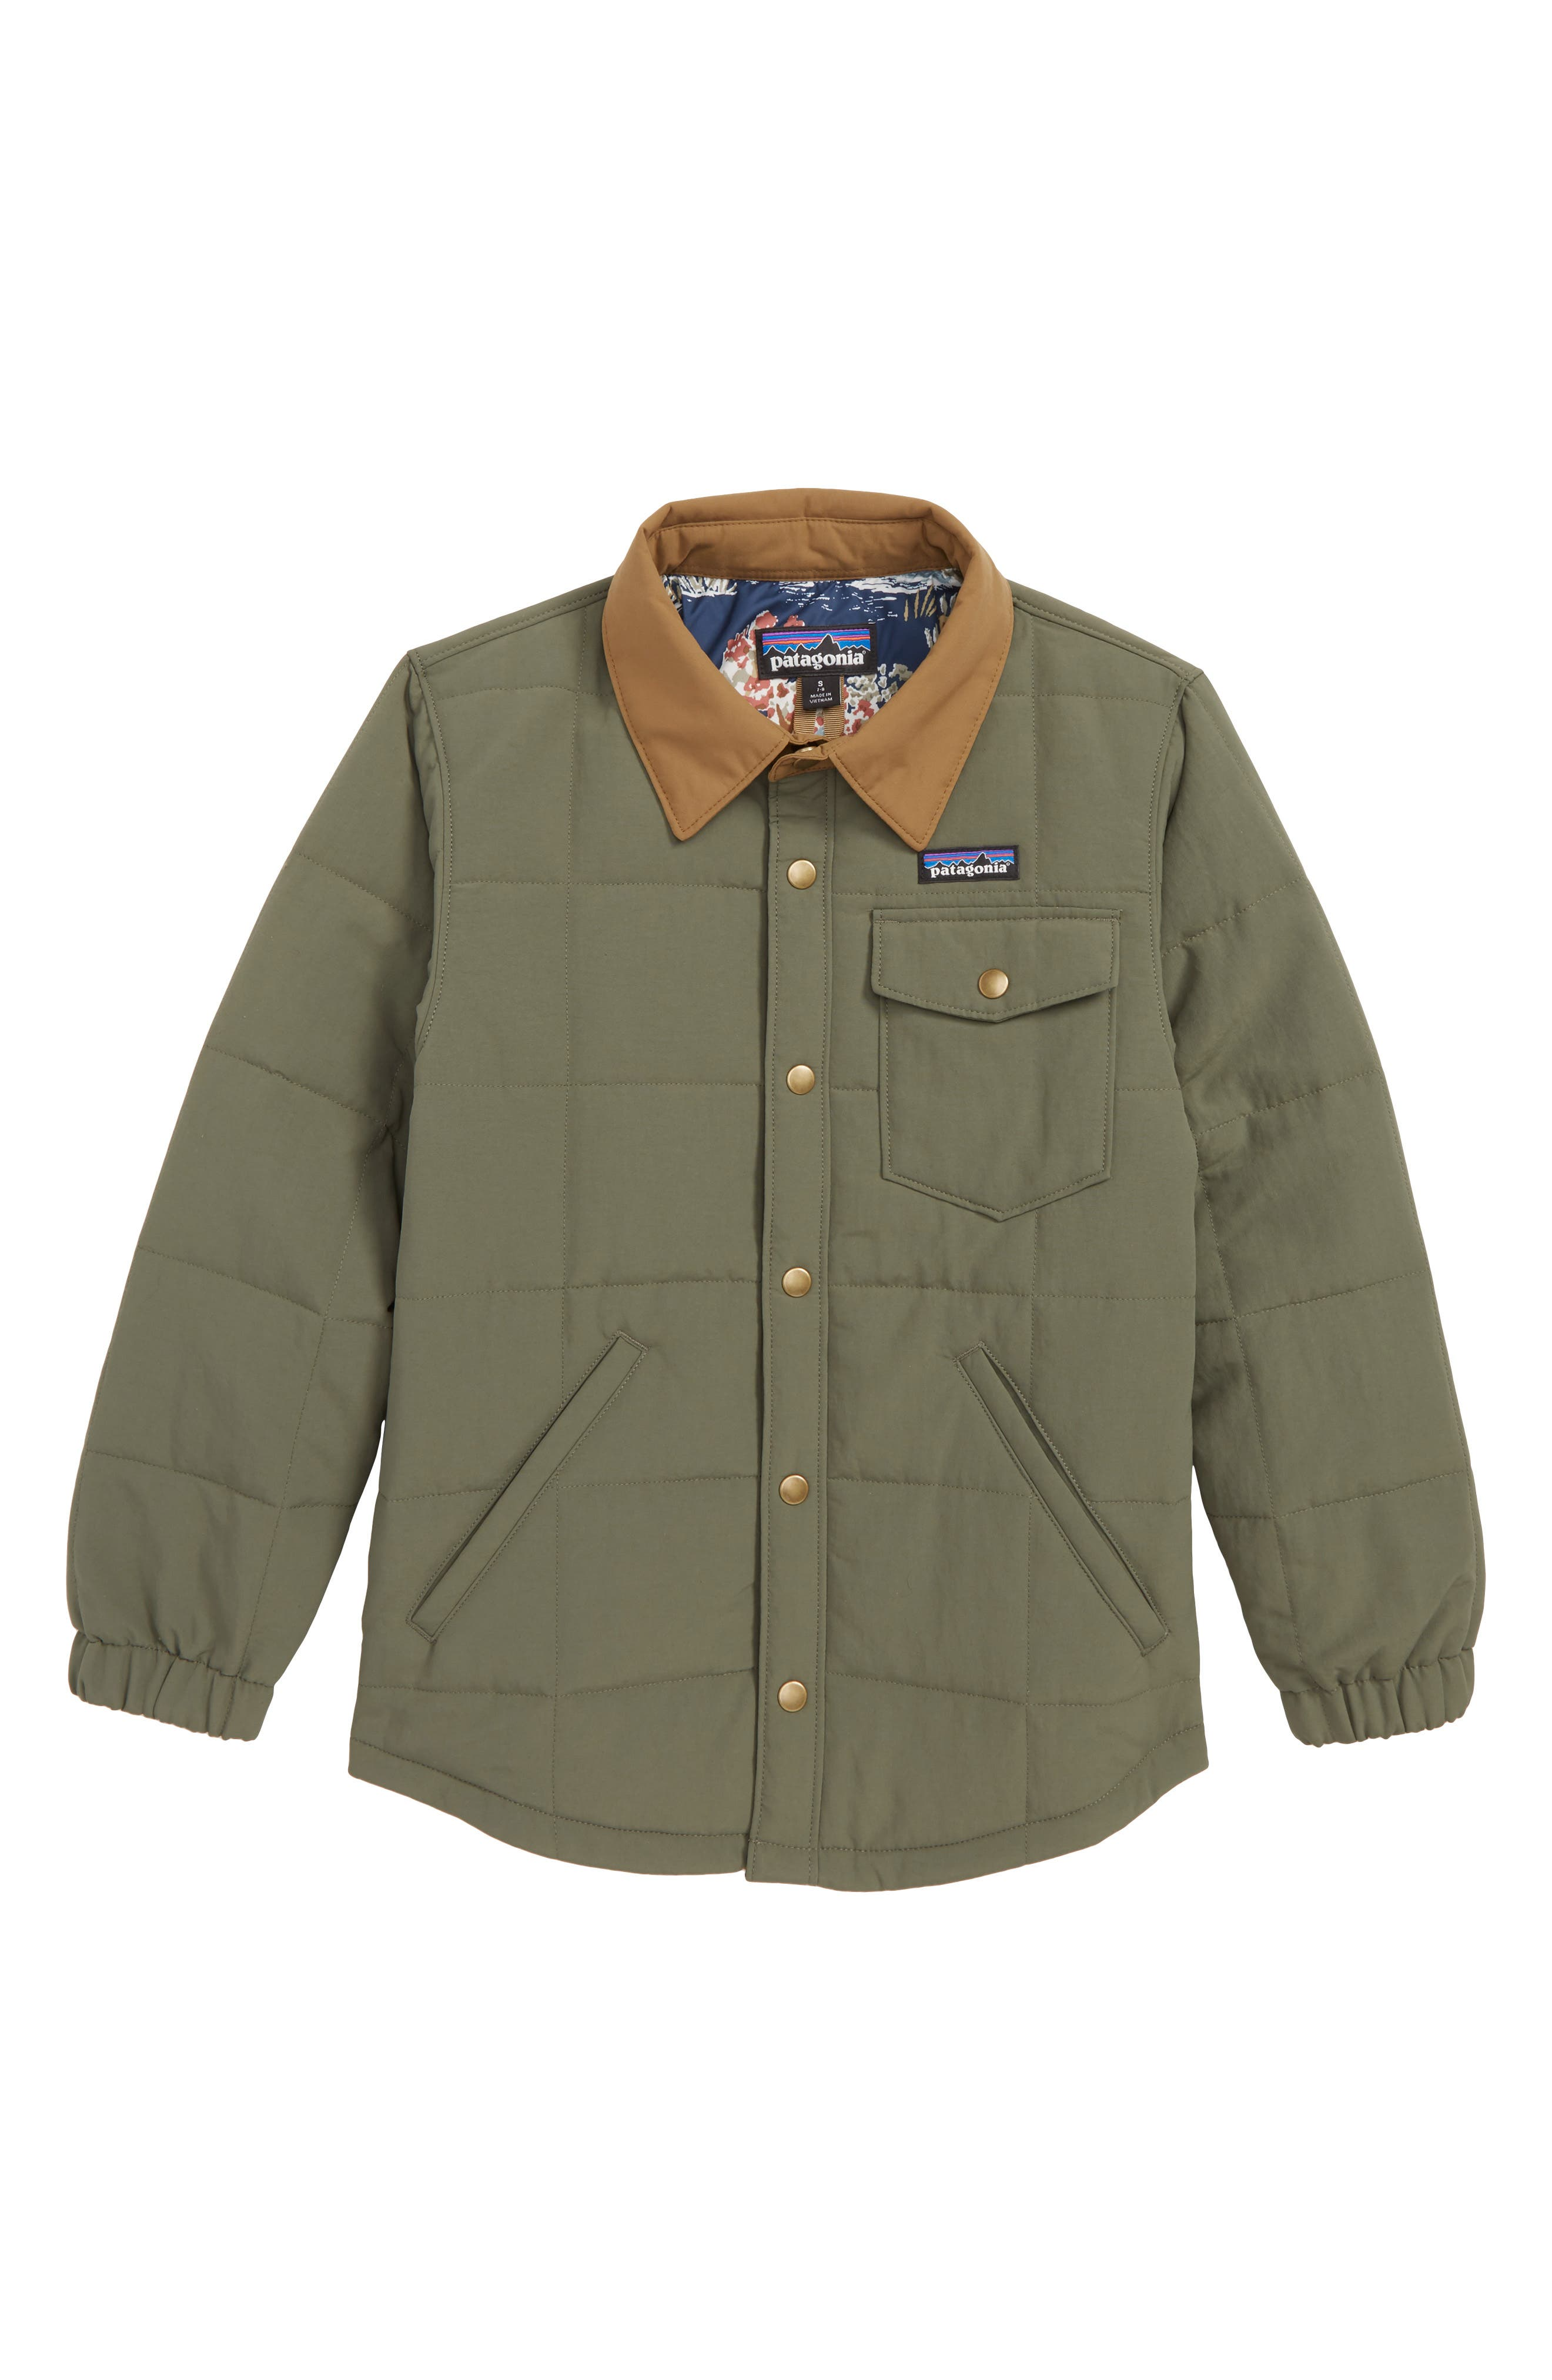 Wind & Water Resistant Quilted Shirt Jacket,                             Main thumbnail 1, color,                             INDUSTRIAL GREEN